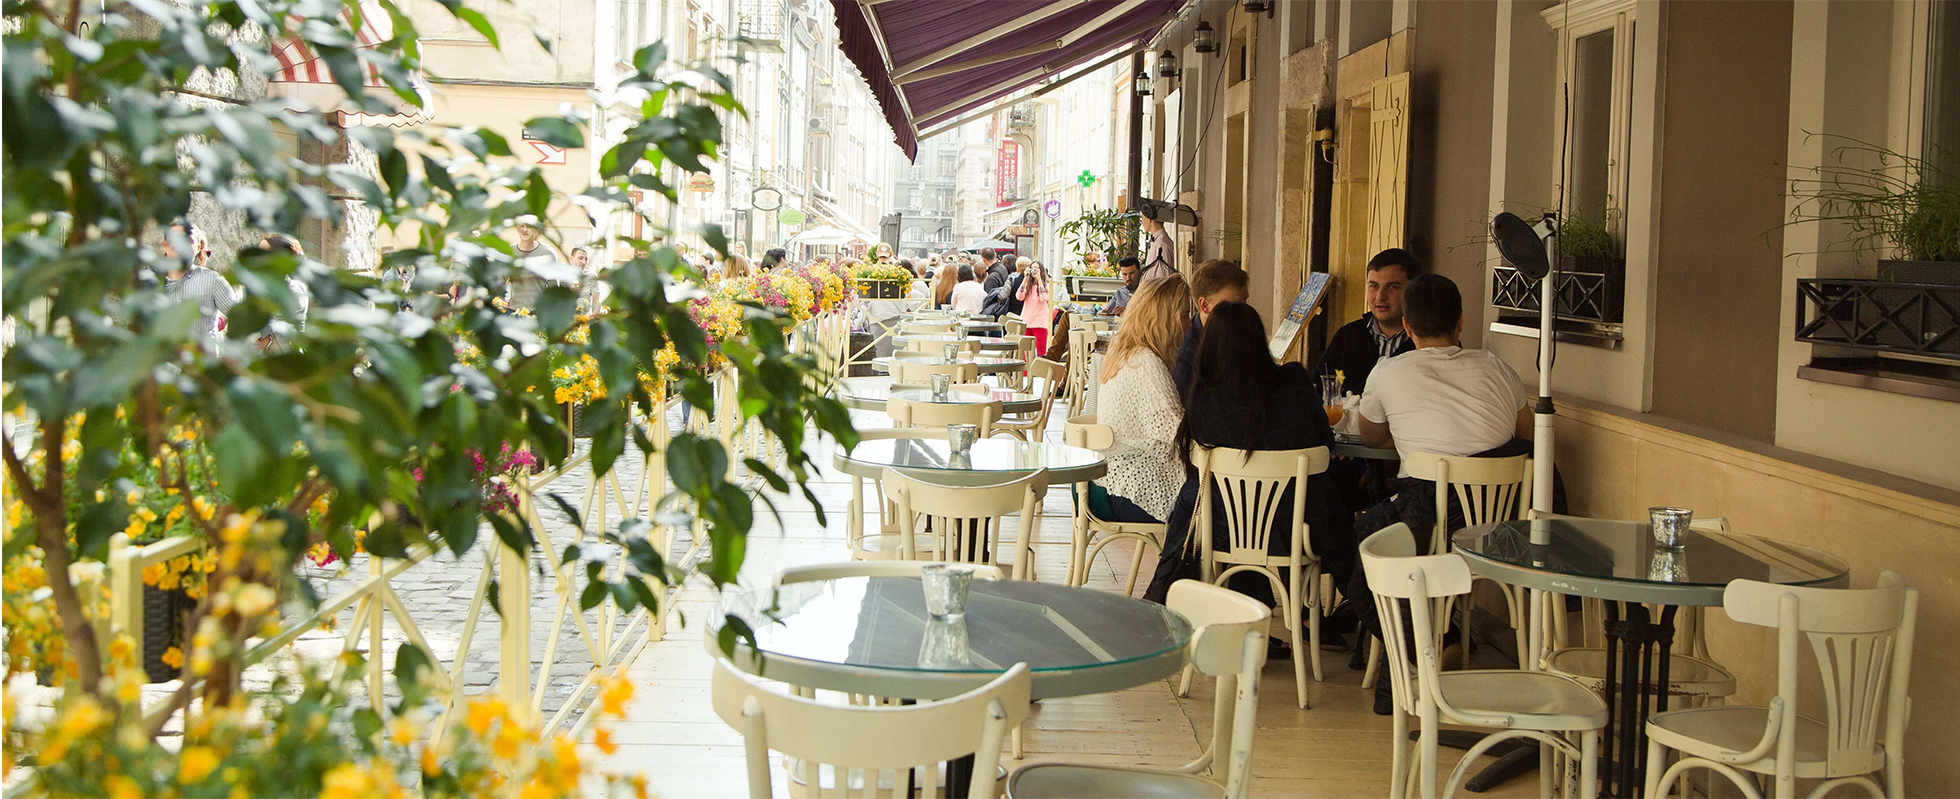 Summer terrace at the hotel